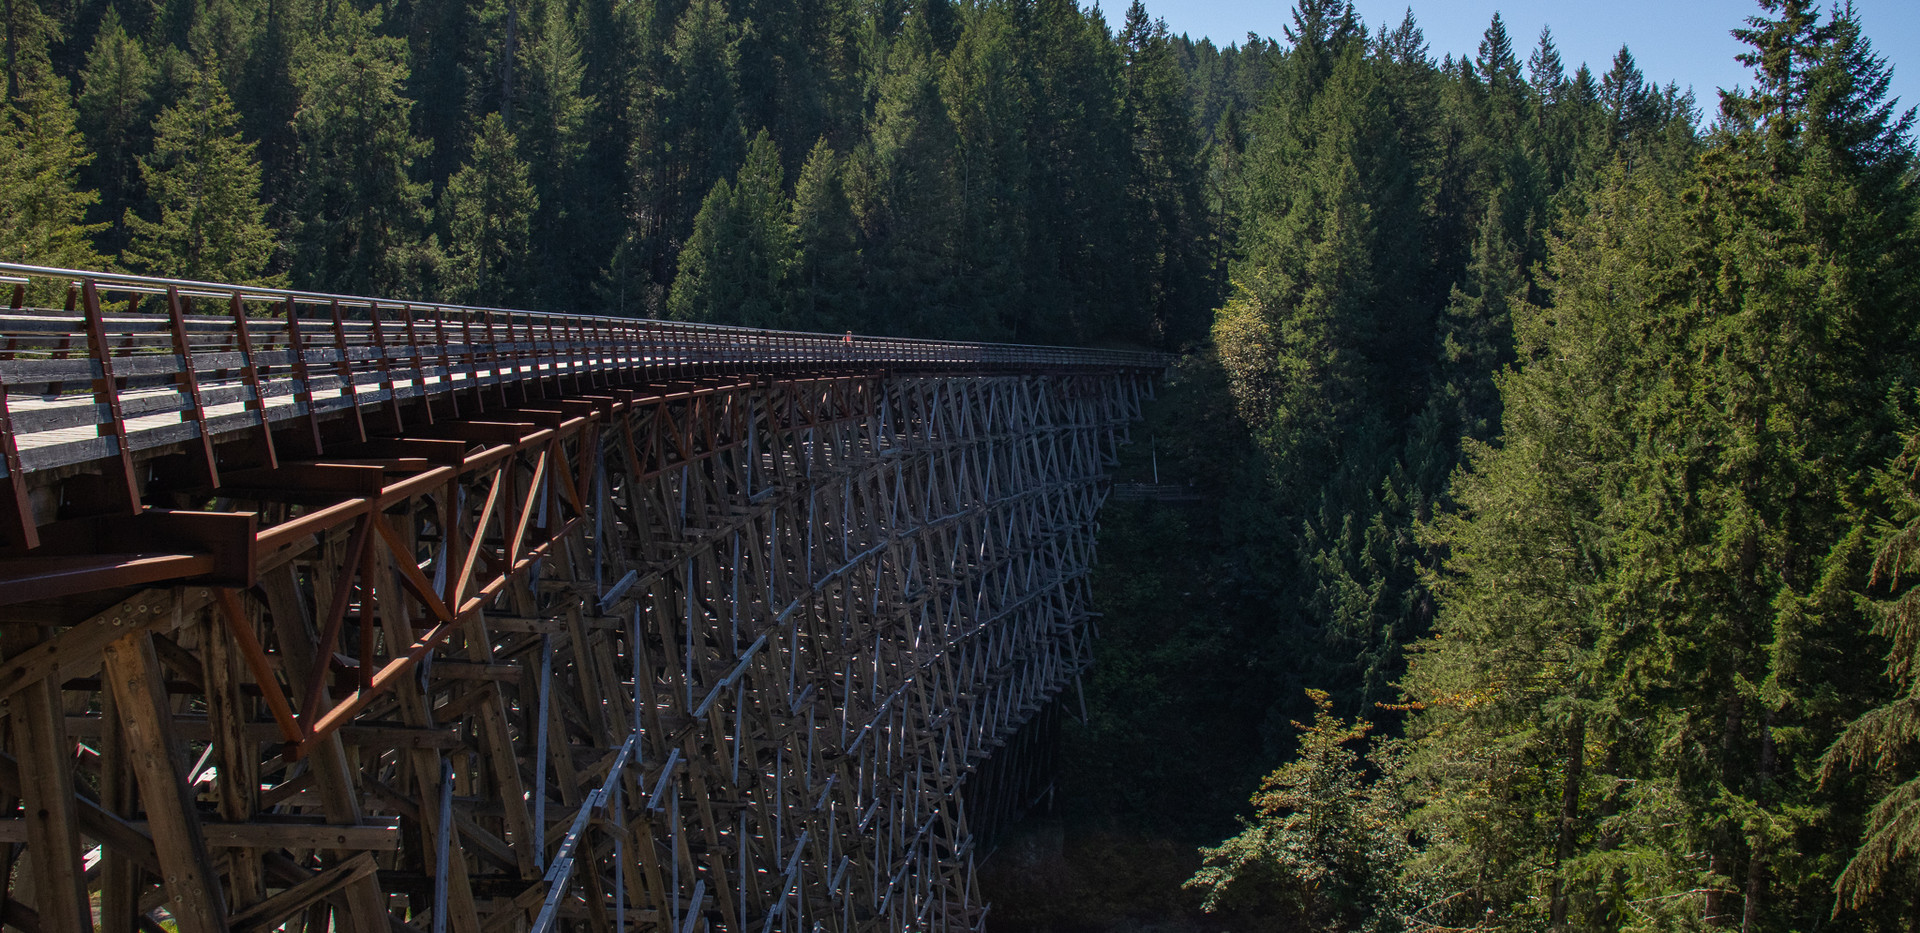 _MG_Kinsol Trestle (Freedom Visuals Photography)3275.jpg